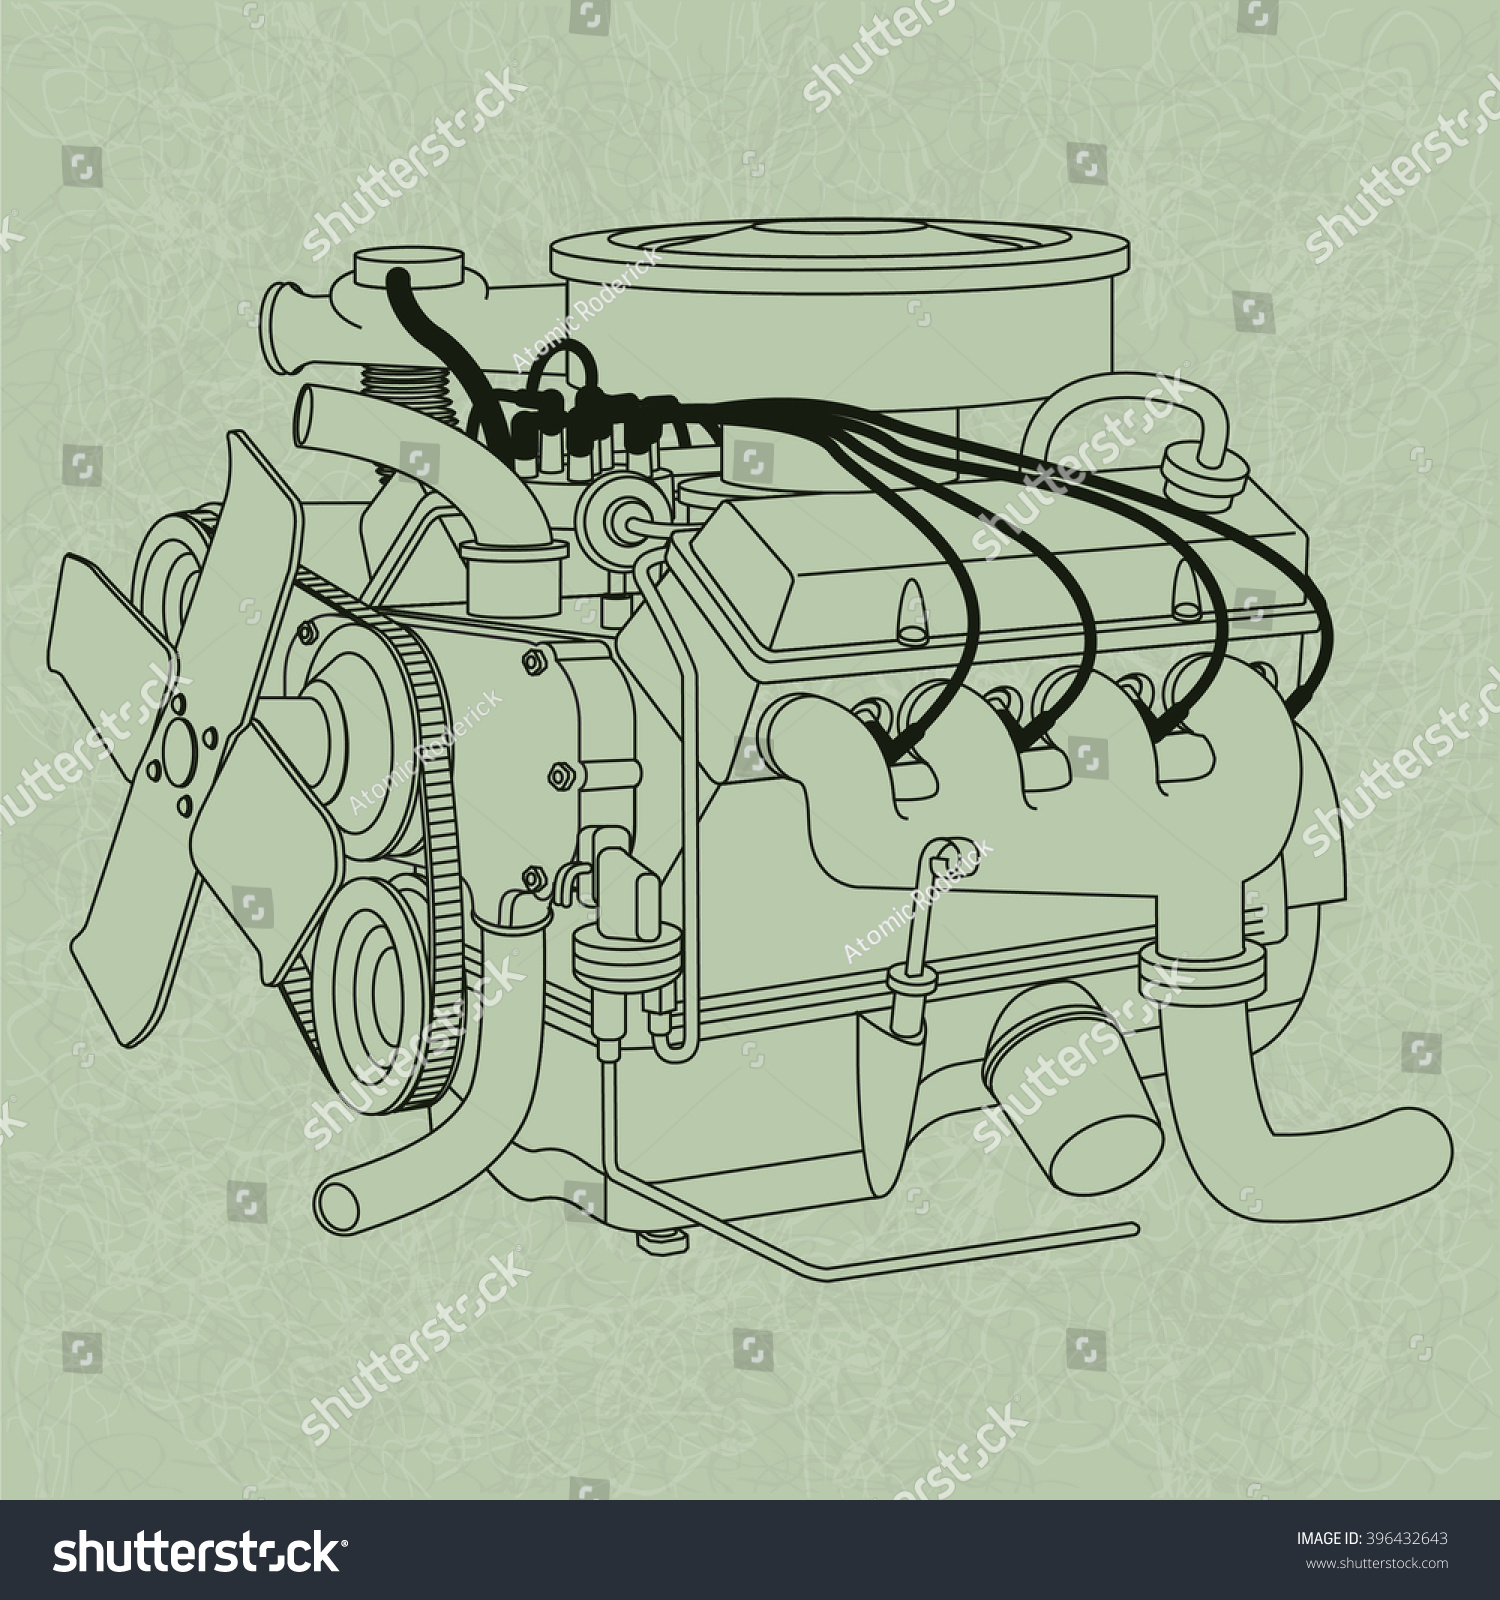 generic car engine diagram on green stock vector 396432643 generic car engine diagram on a green page background in the style of an